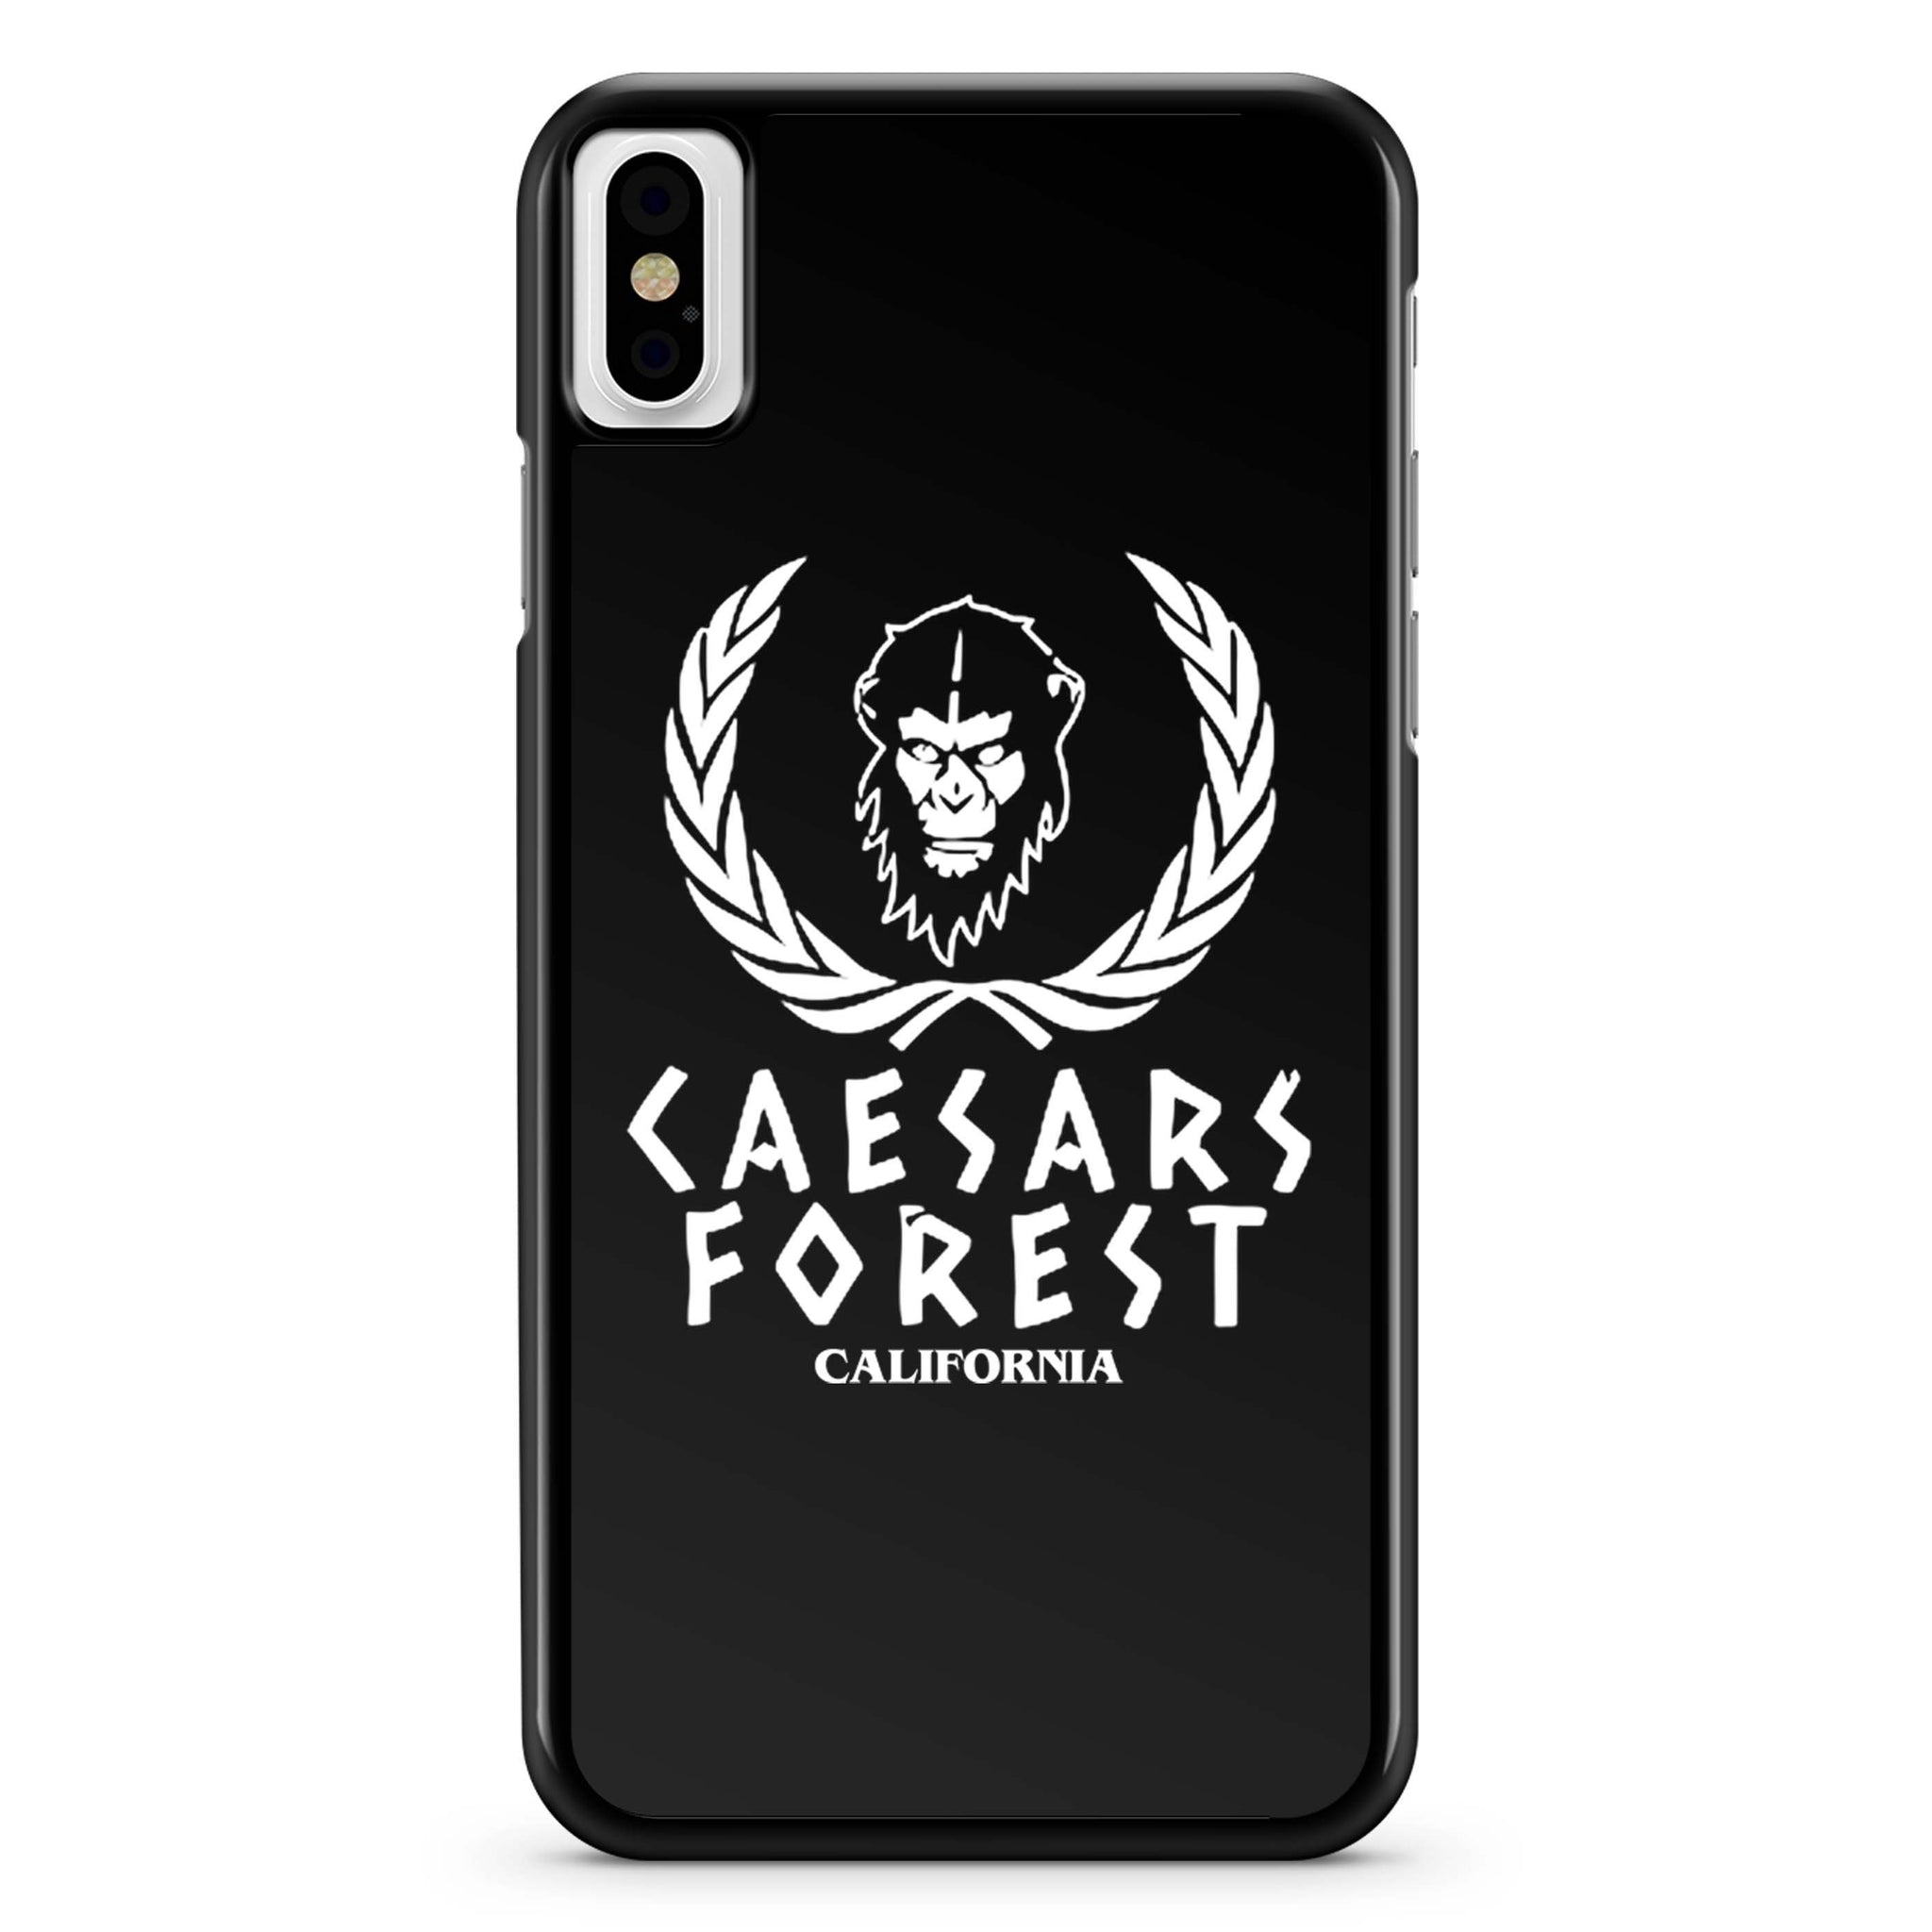 Caesars Forest Planet Of The Apes California iPhone X Case